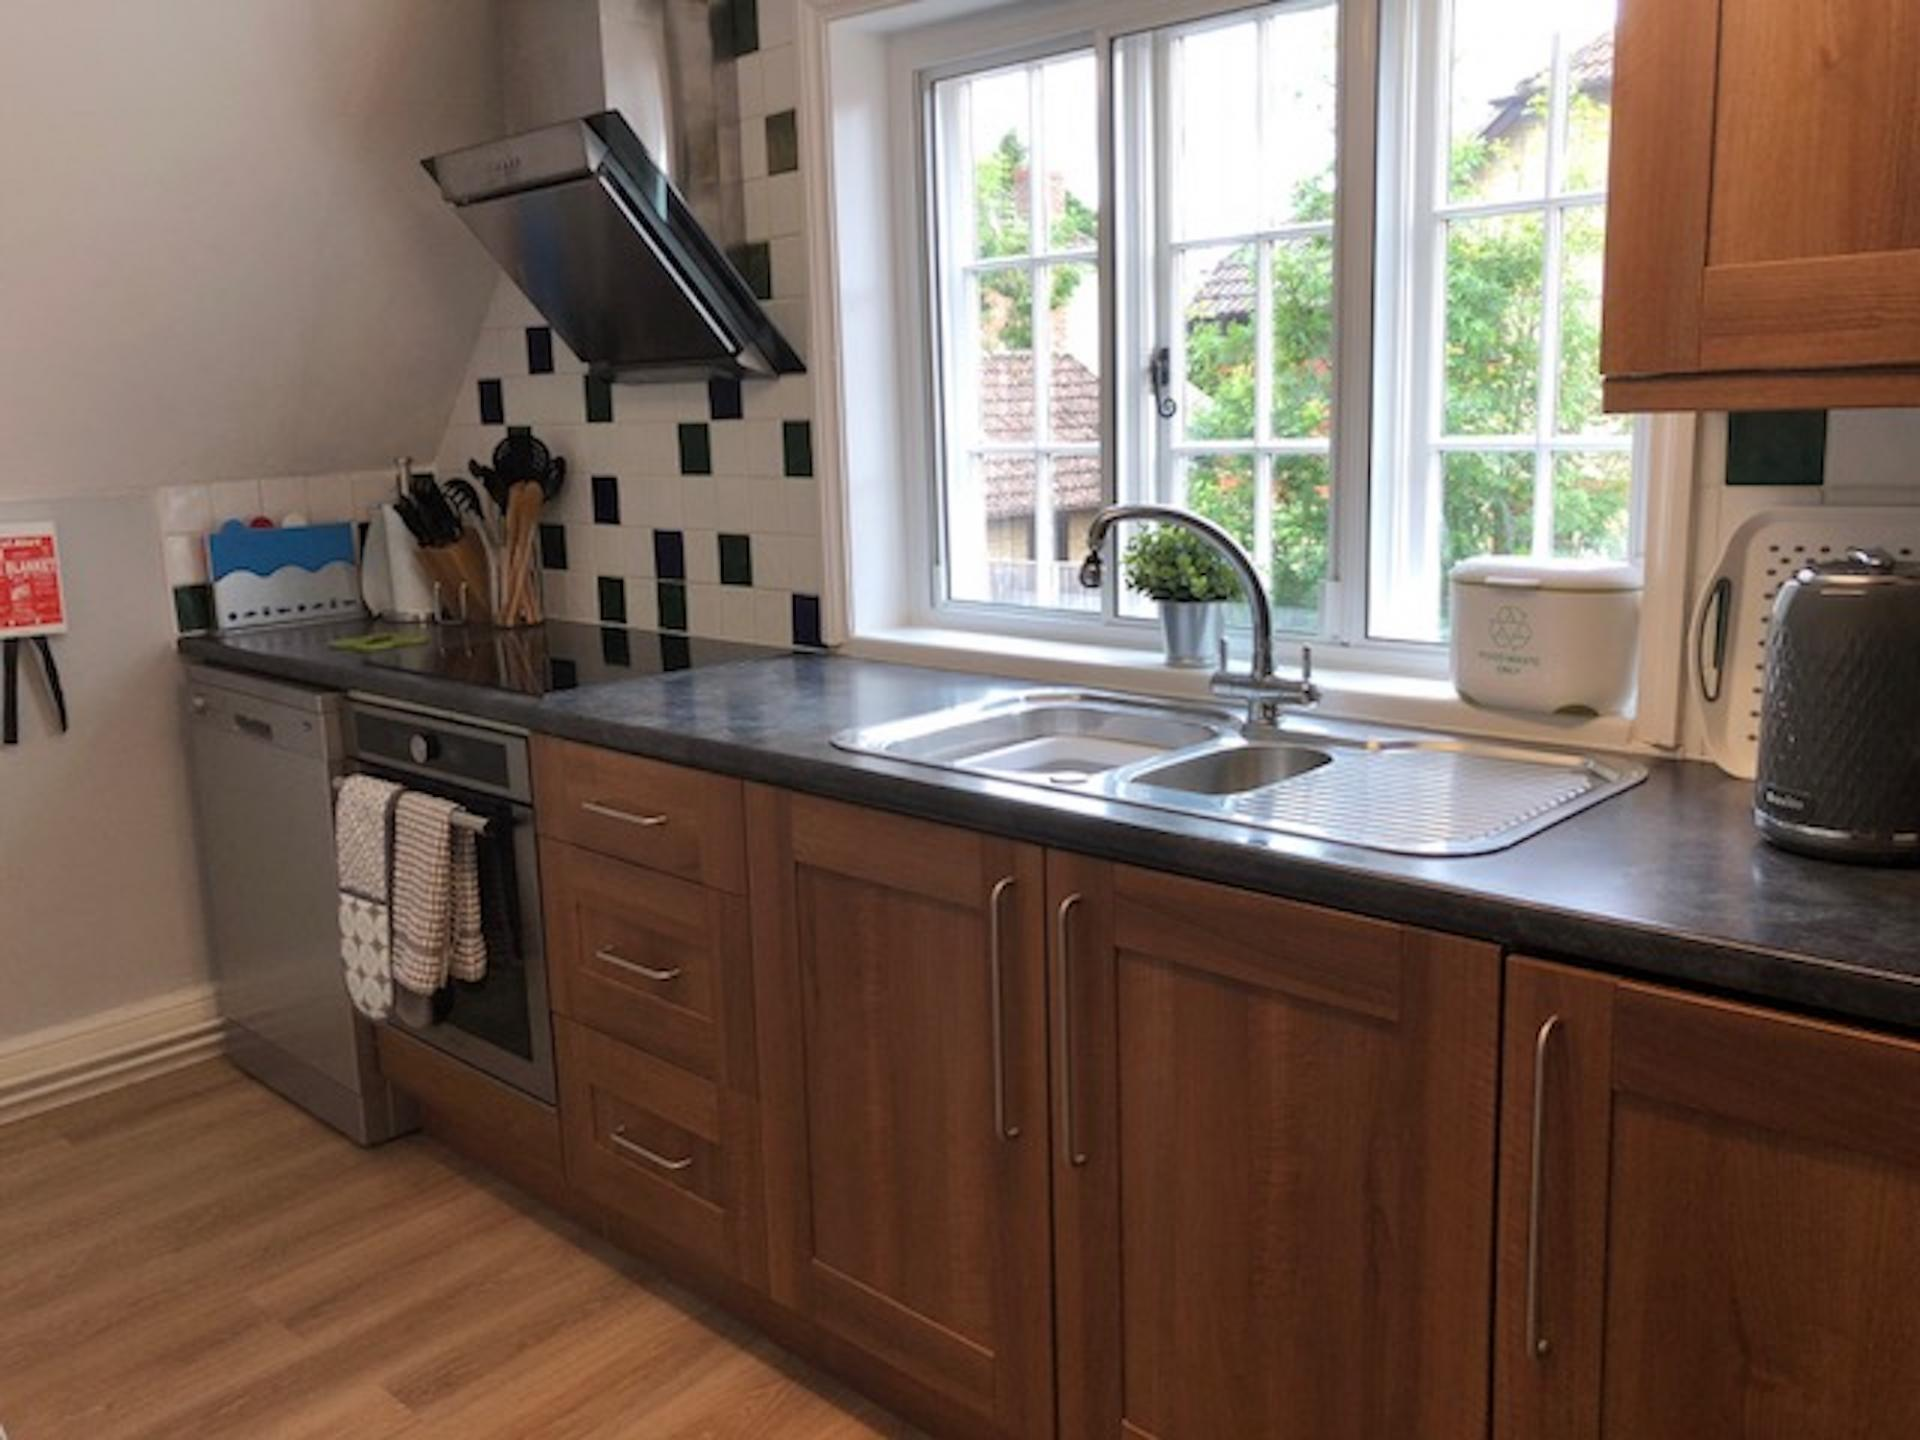 Kitchen at Chilton Serviced Apartments